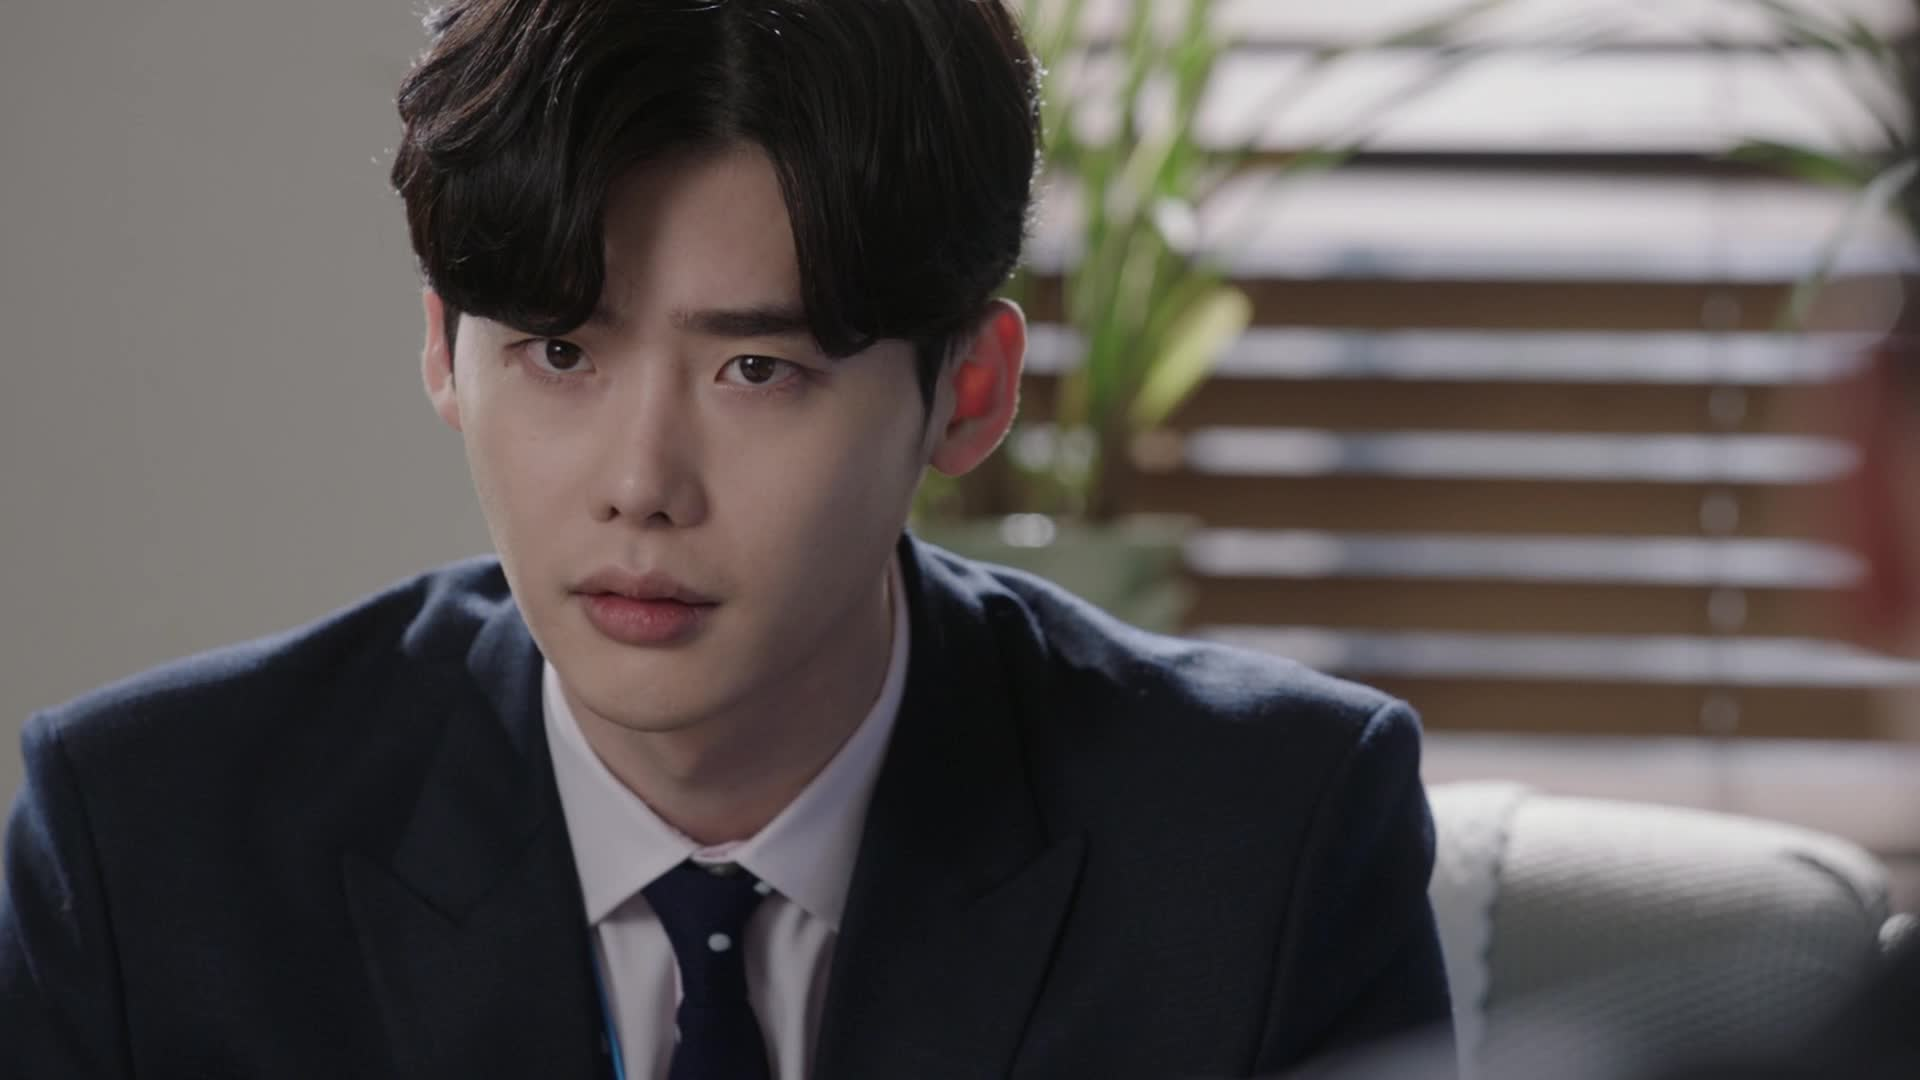 Episode 6 Preview: While You Were Sleeping